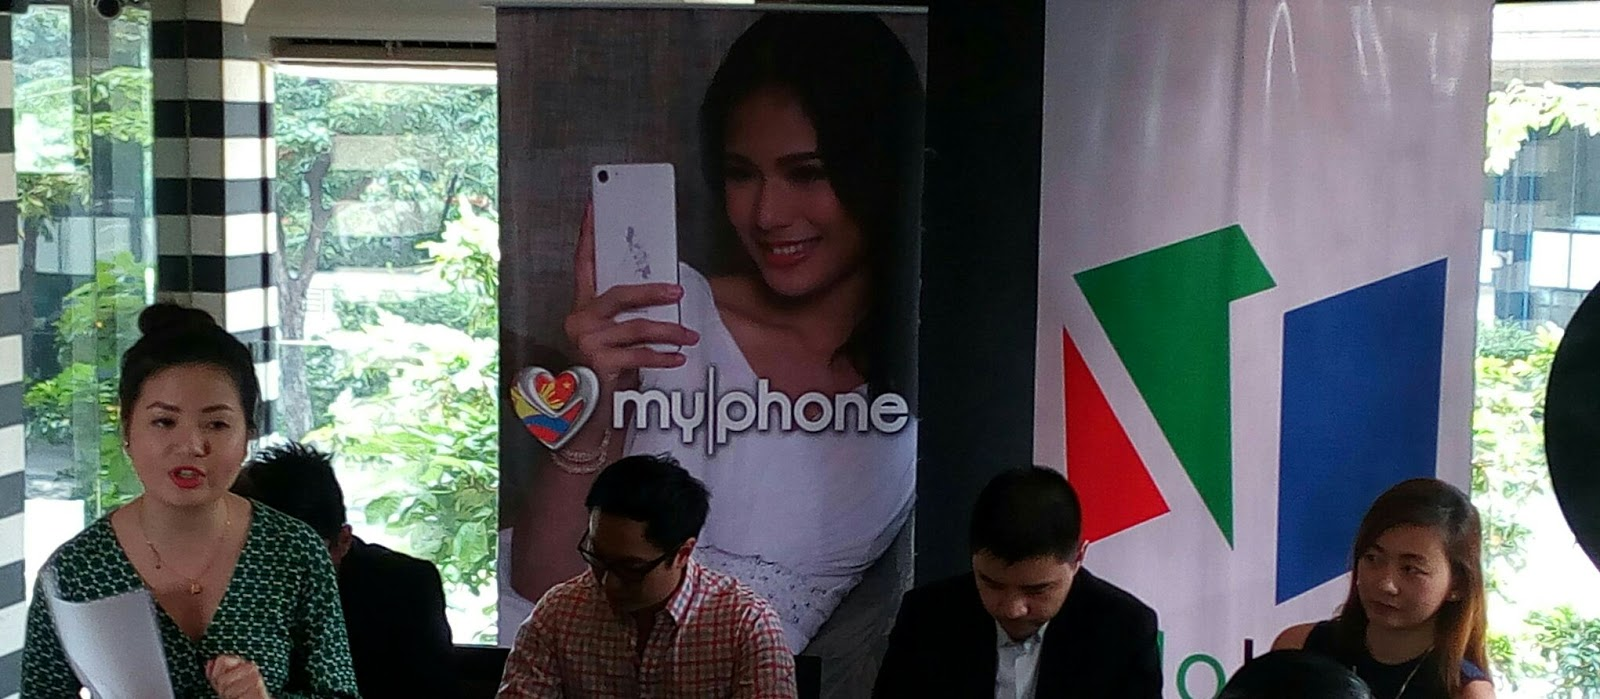 myphone marks partnetship with no ink app of abs cbn publishing